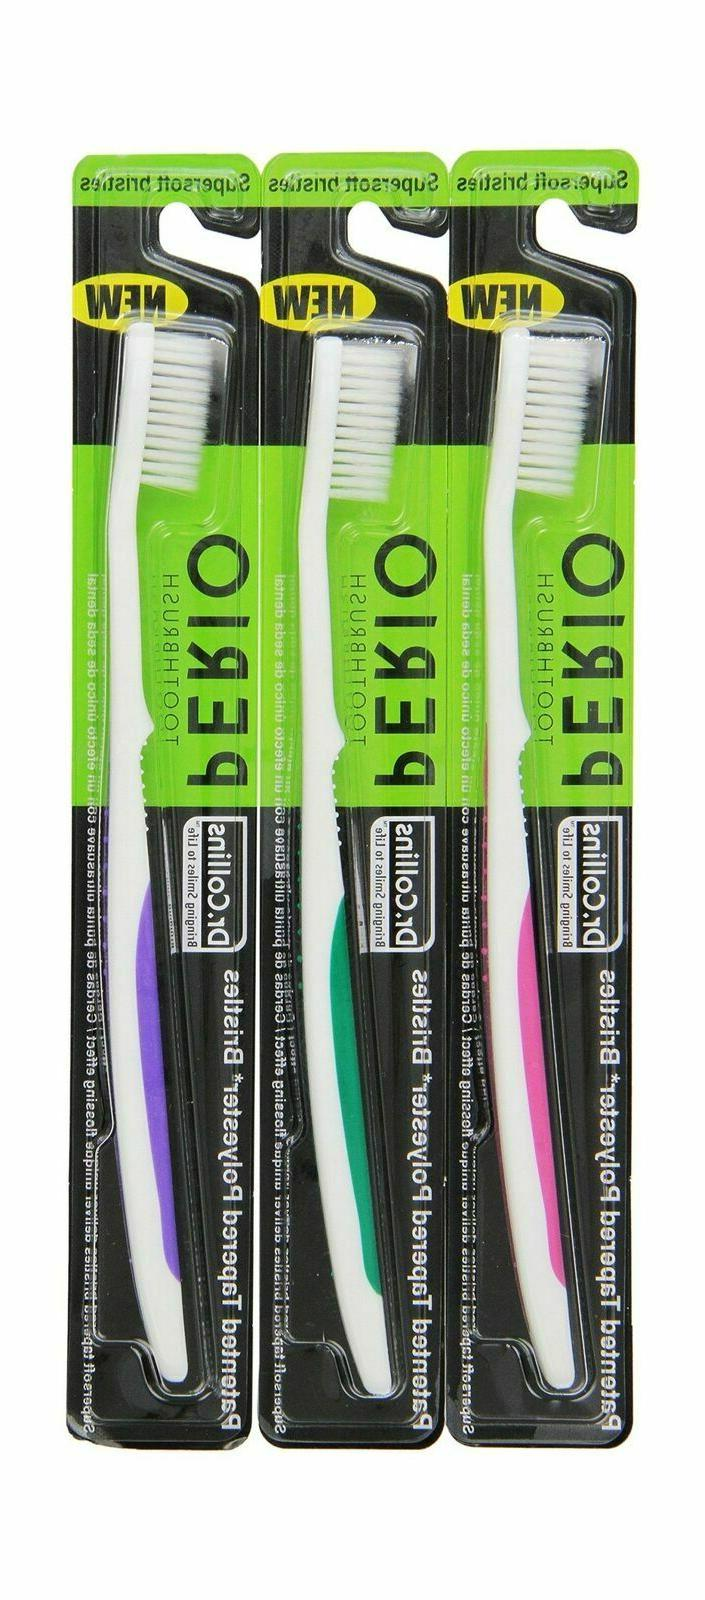 Dr. Collins Perio Toothbrush,